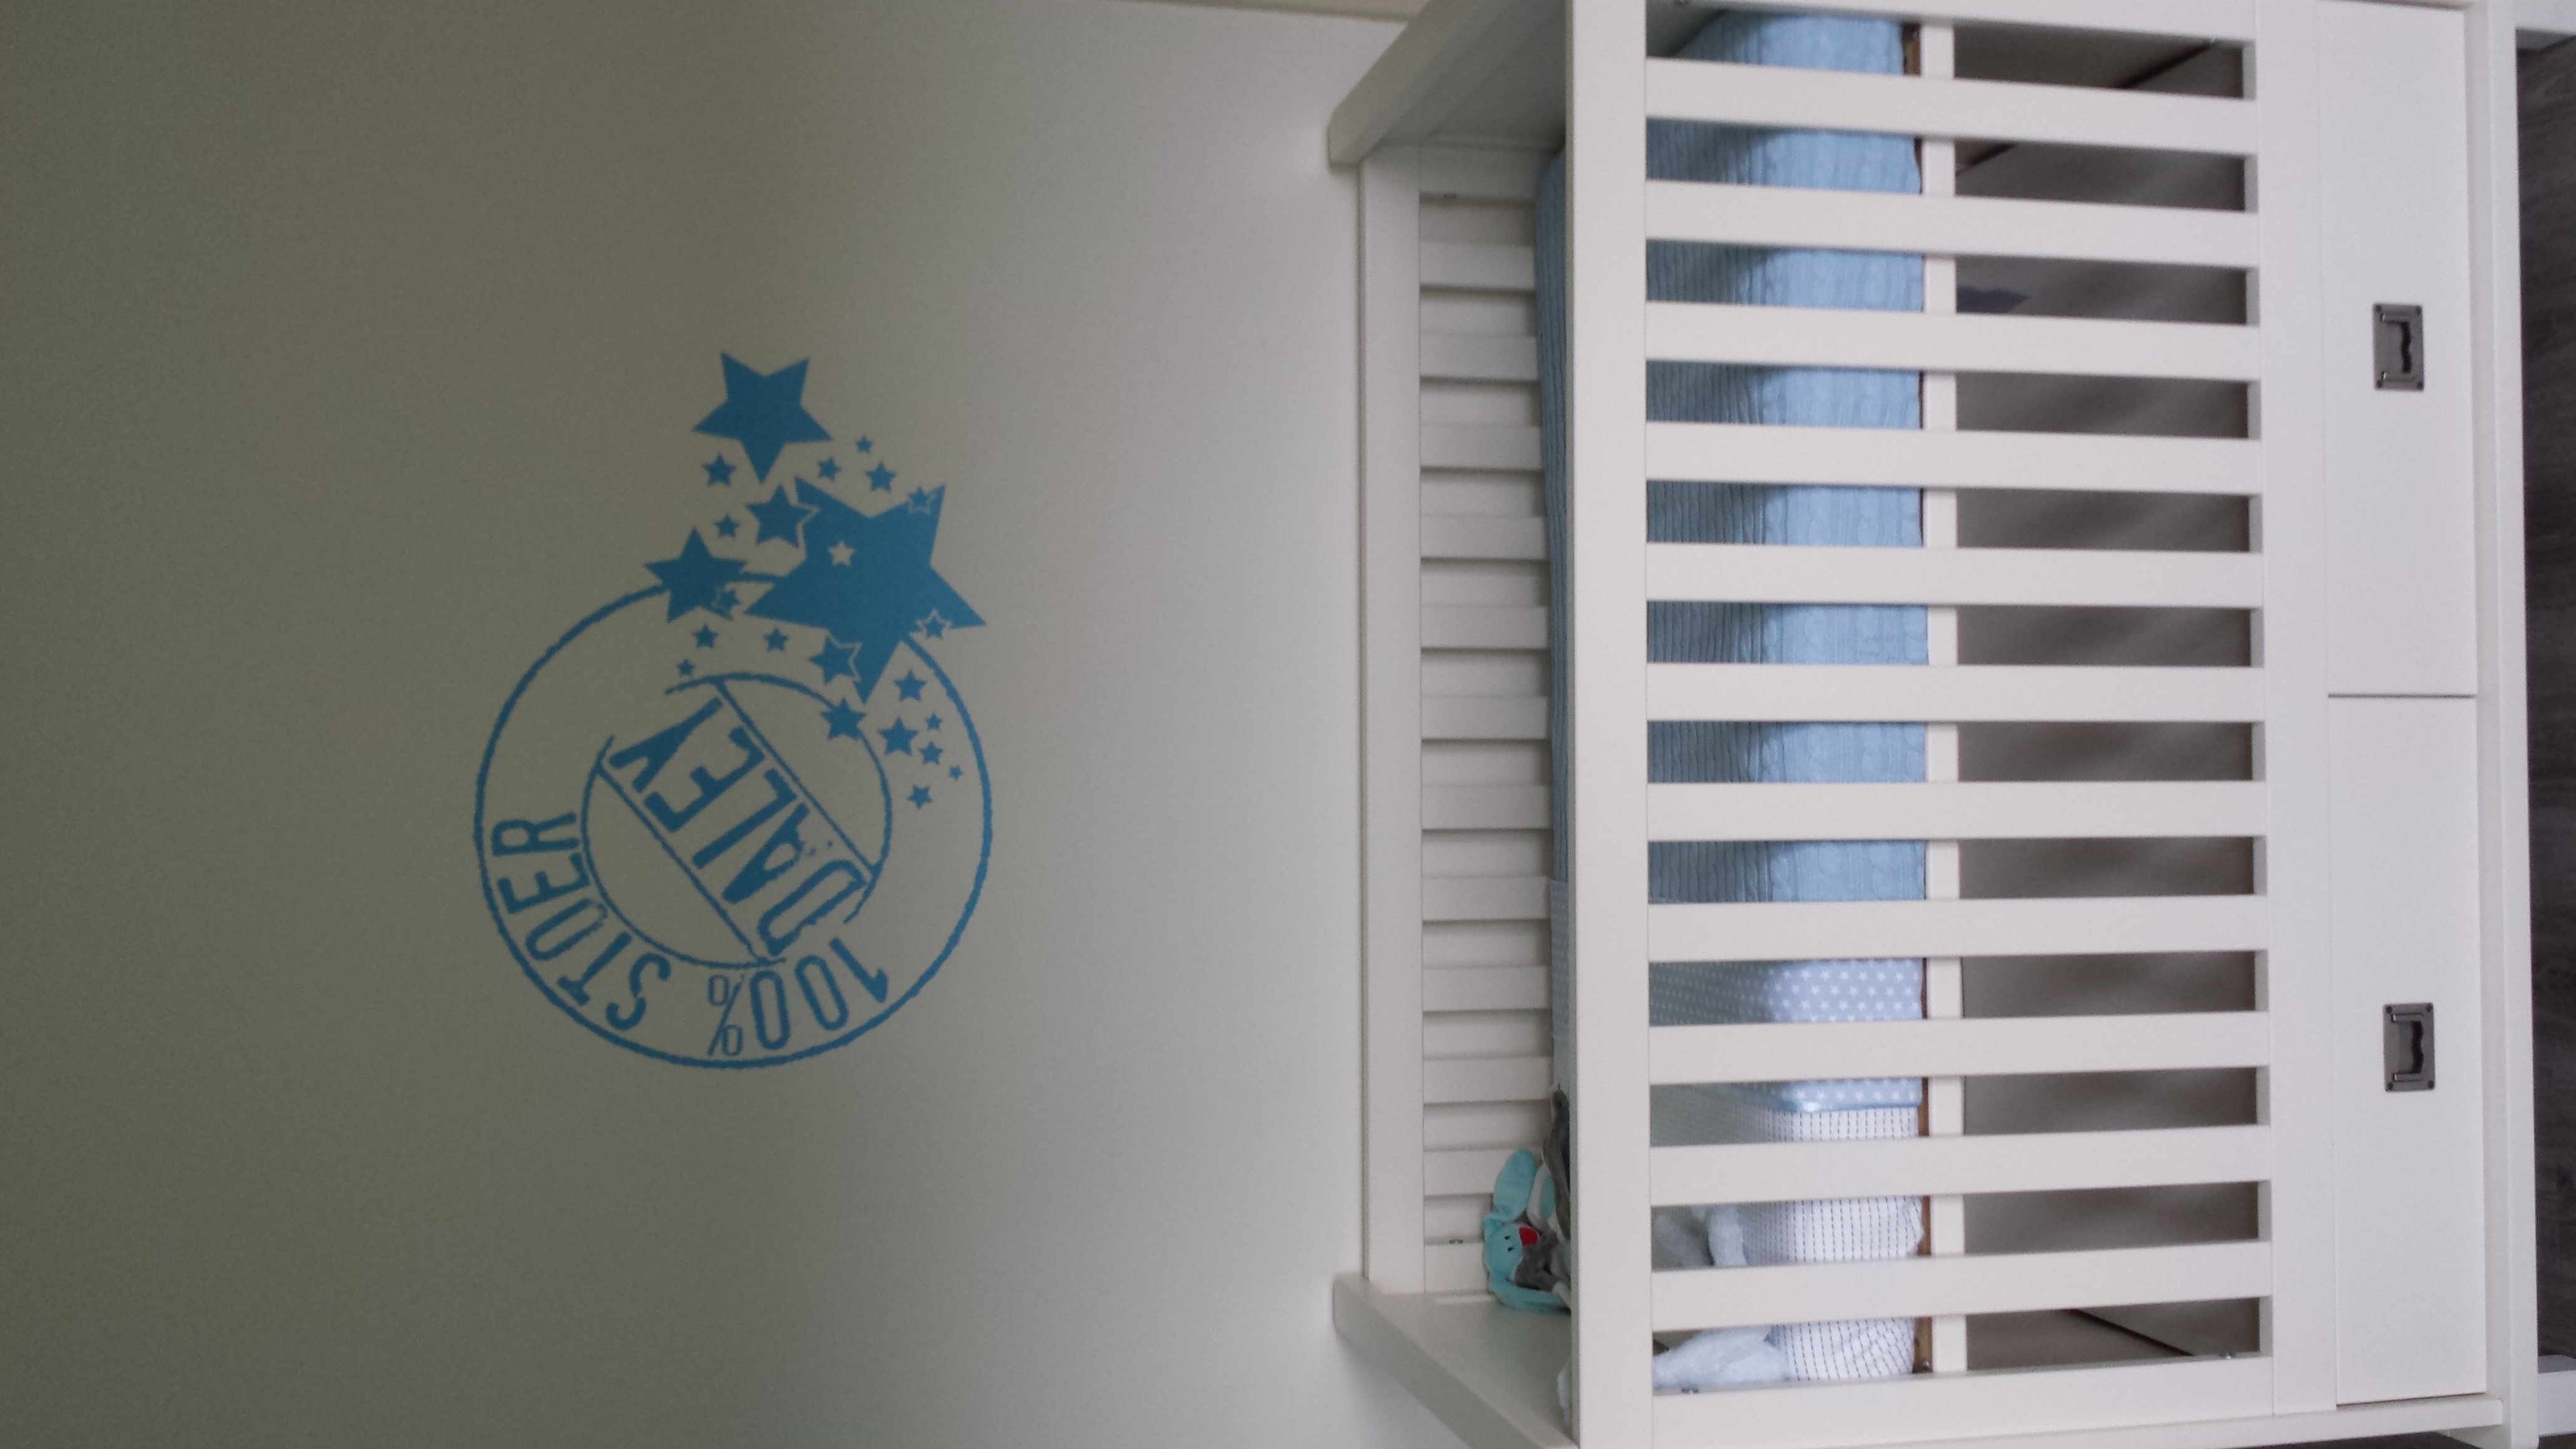 Sticker kamer Daley